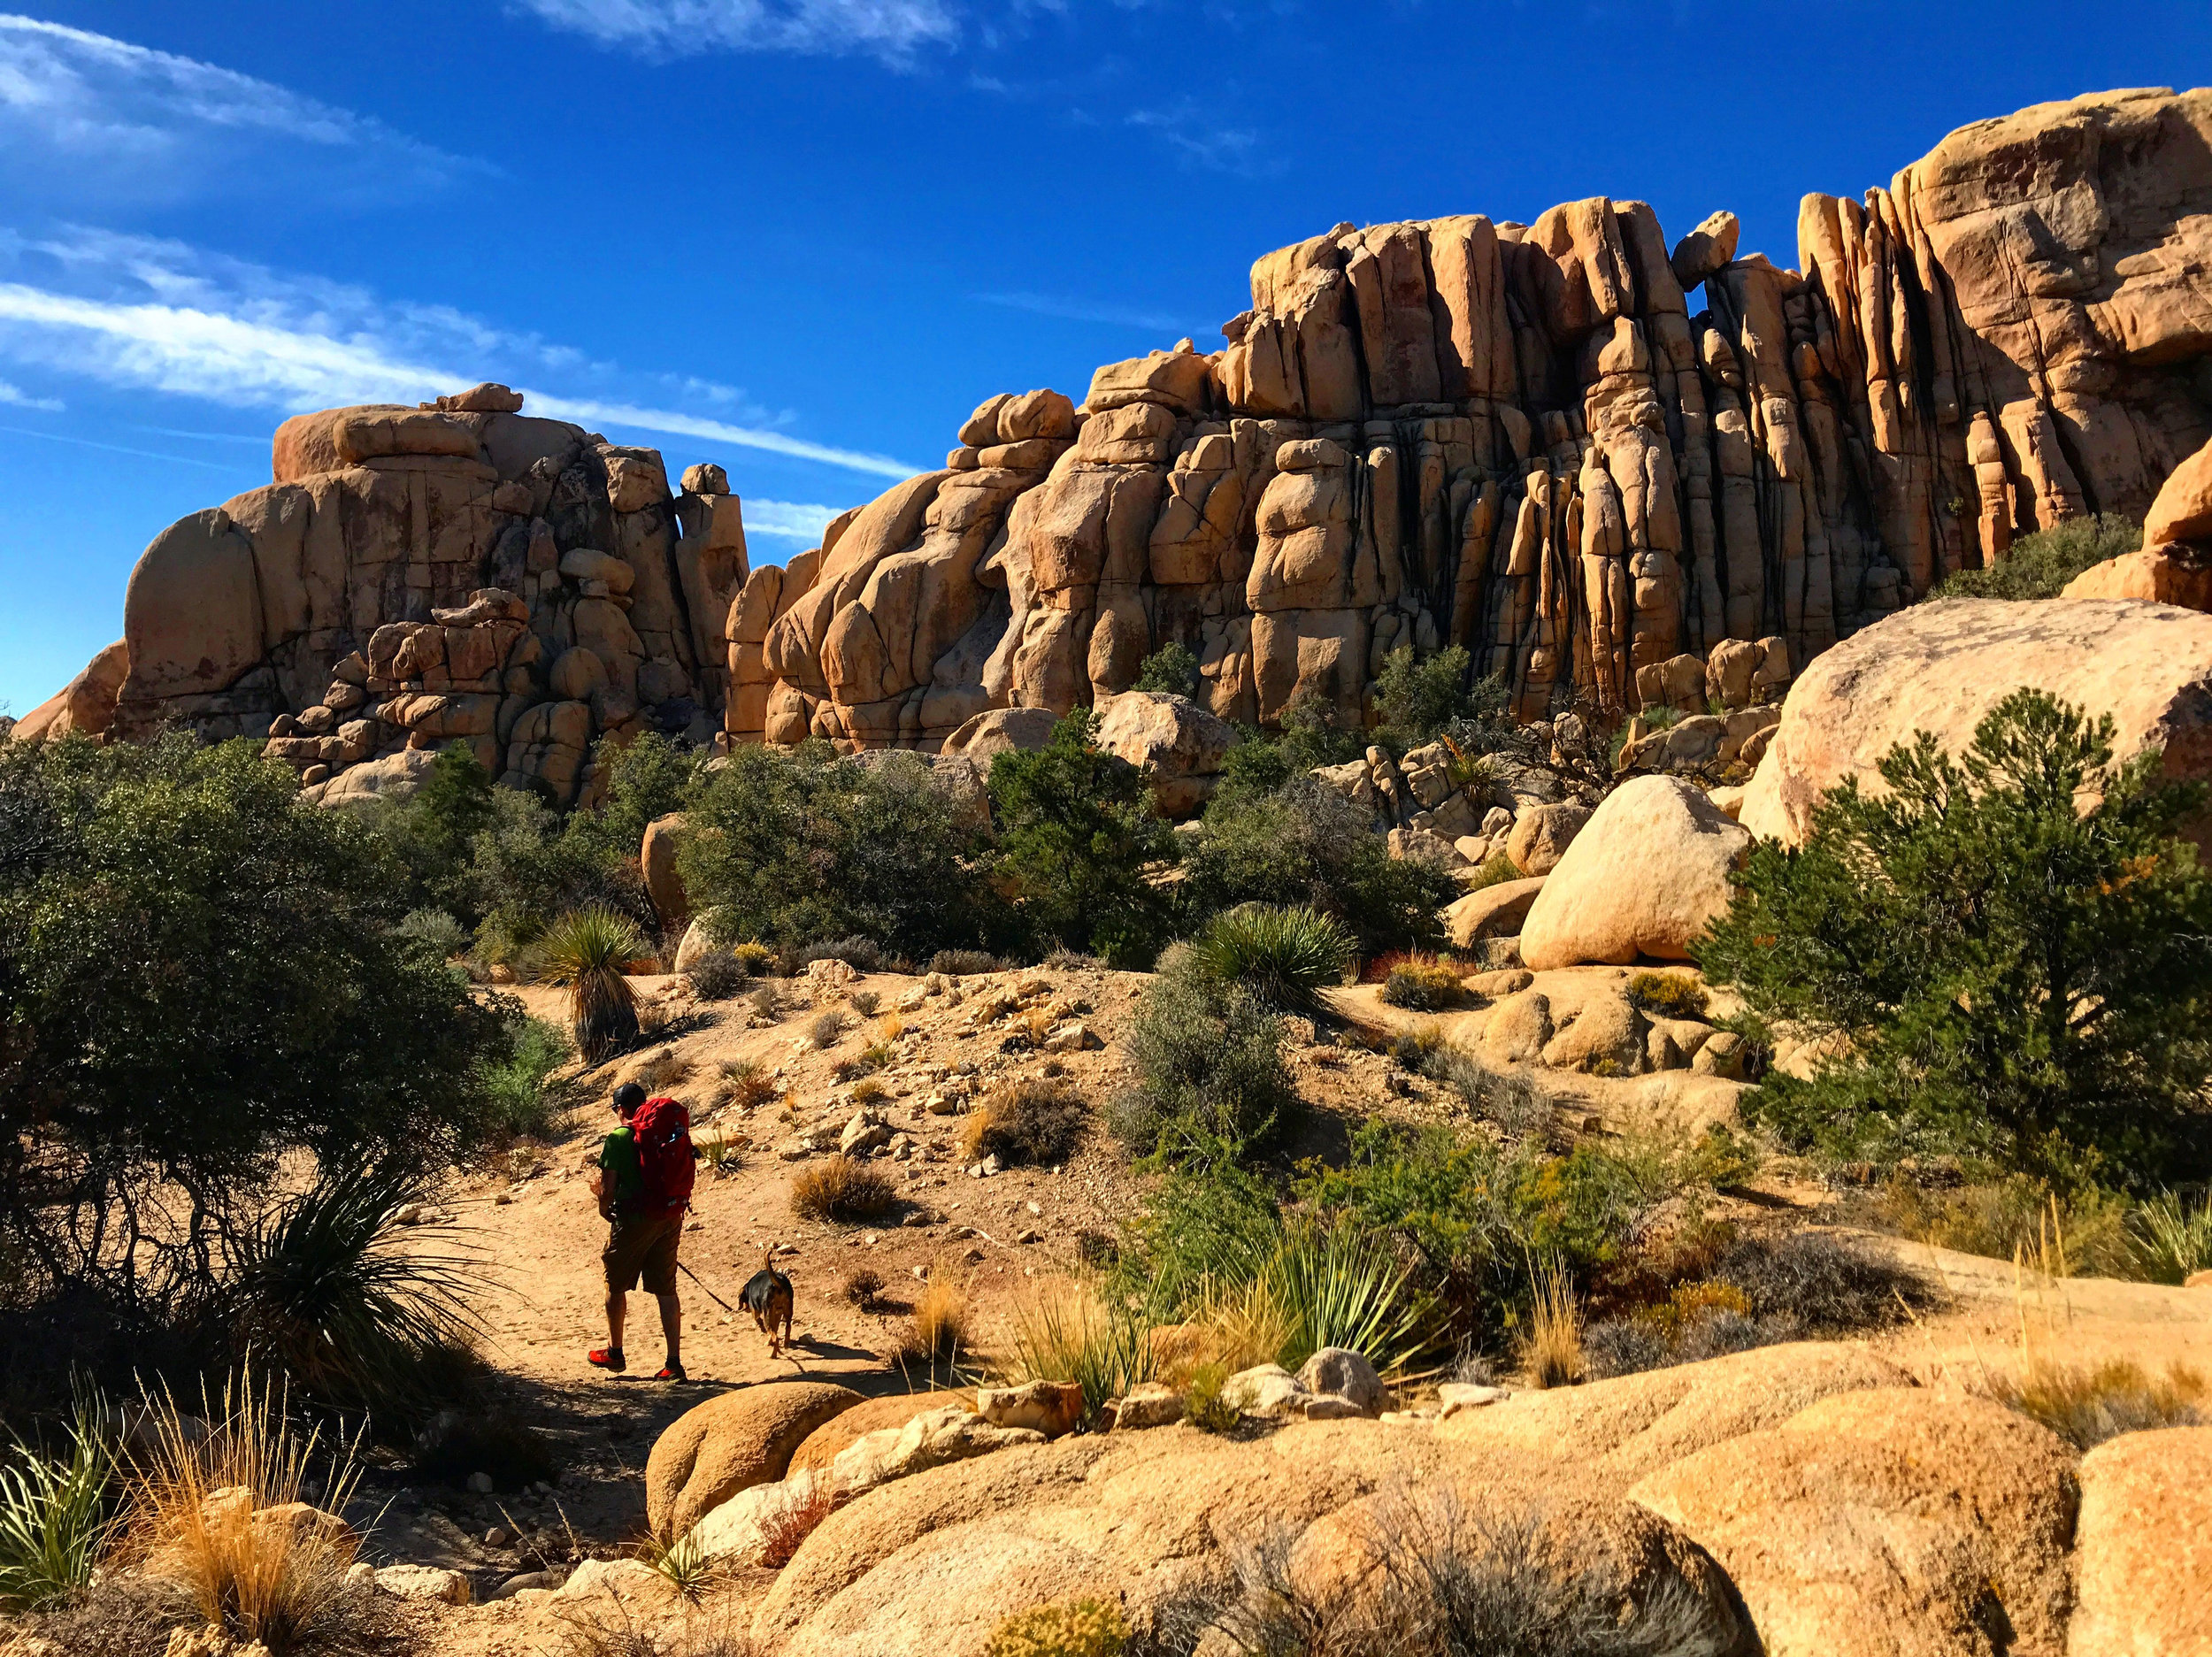 There's no running water or services in Joshua Tree National Park, so bring extra water, especially if traveling with a pet!